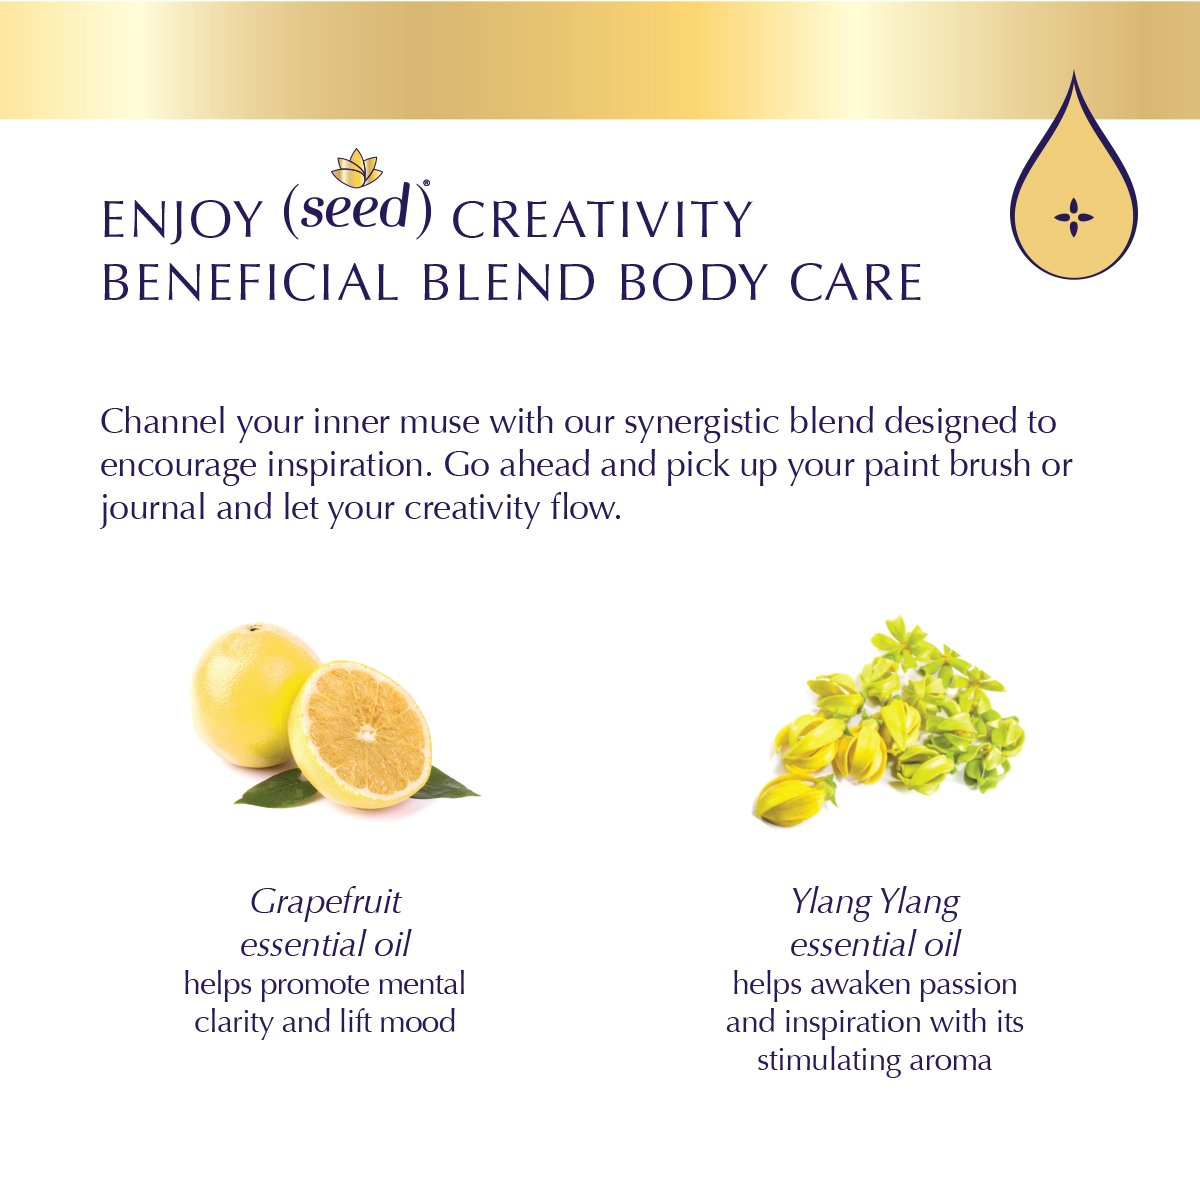 Seed Creativity Blend Body Care with grapefruit and ylang ylang essential oils